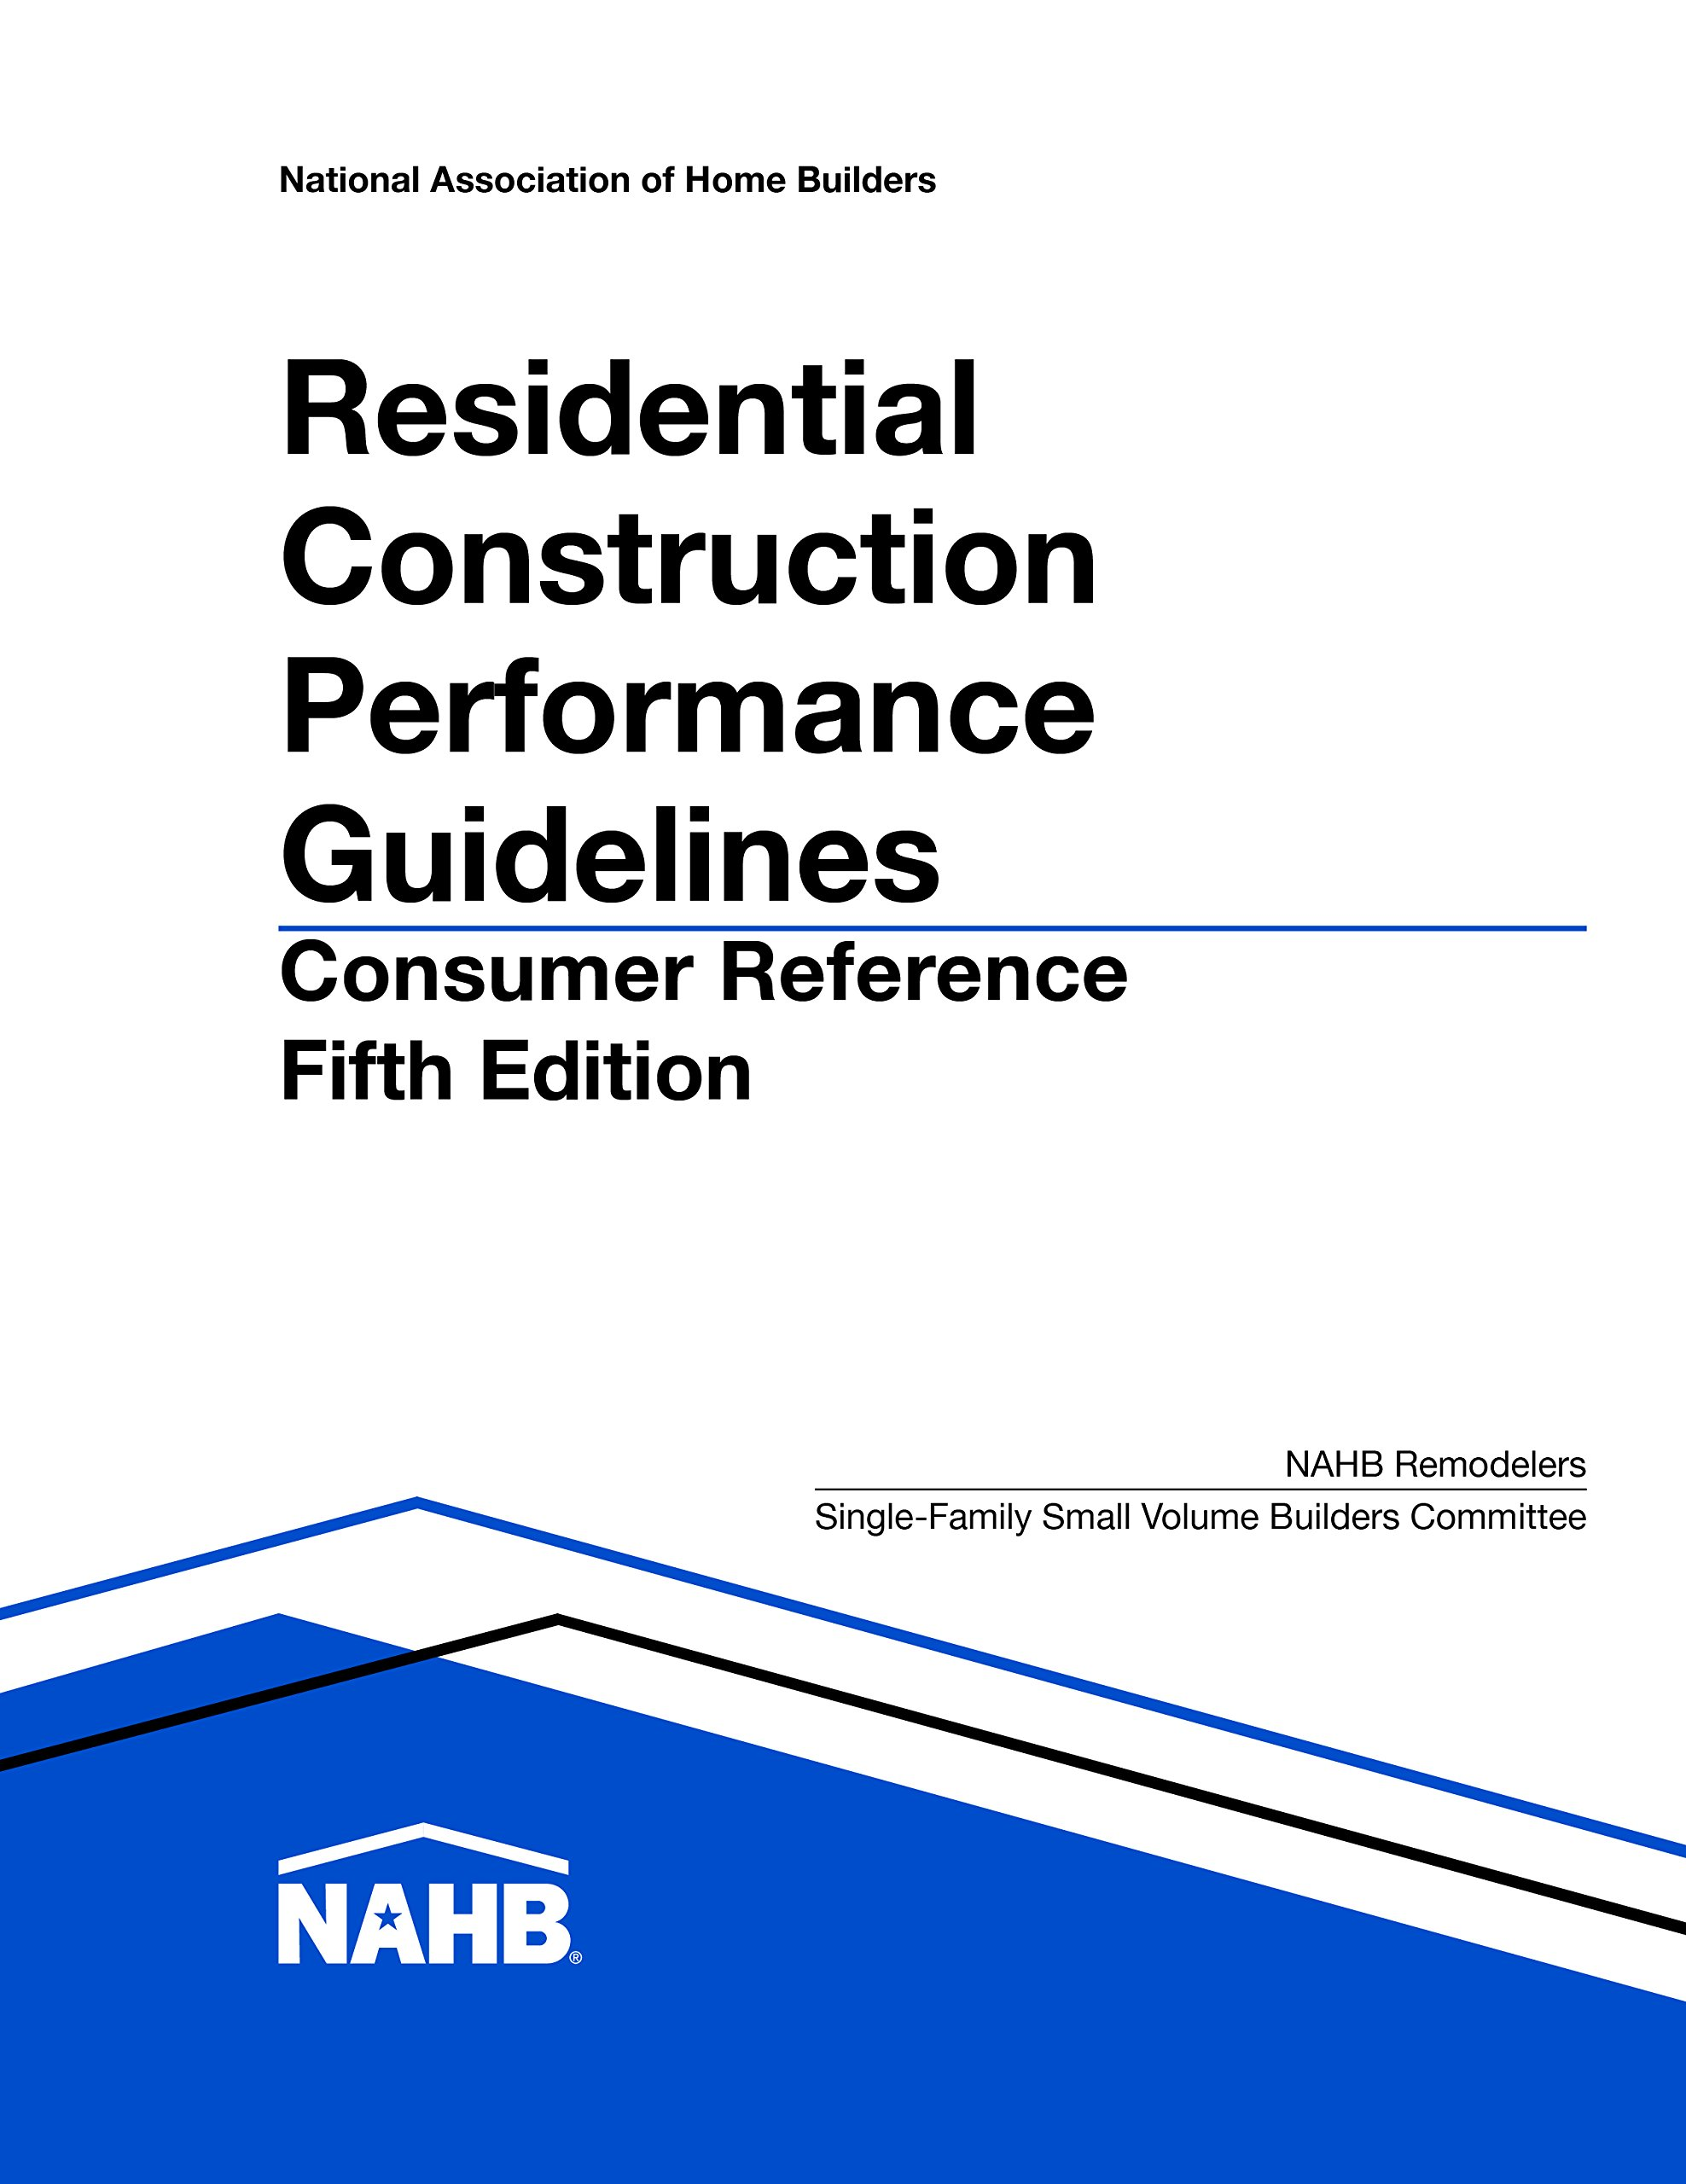 Residential Construction Performance Guidelines, 5th edition, Consumer Reference